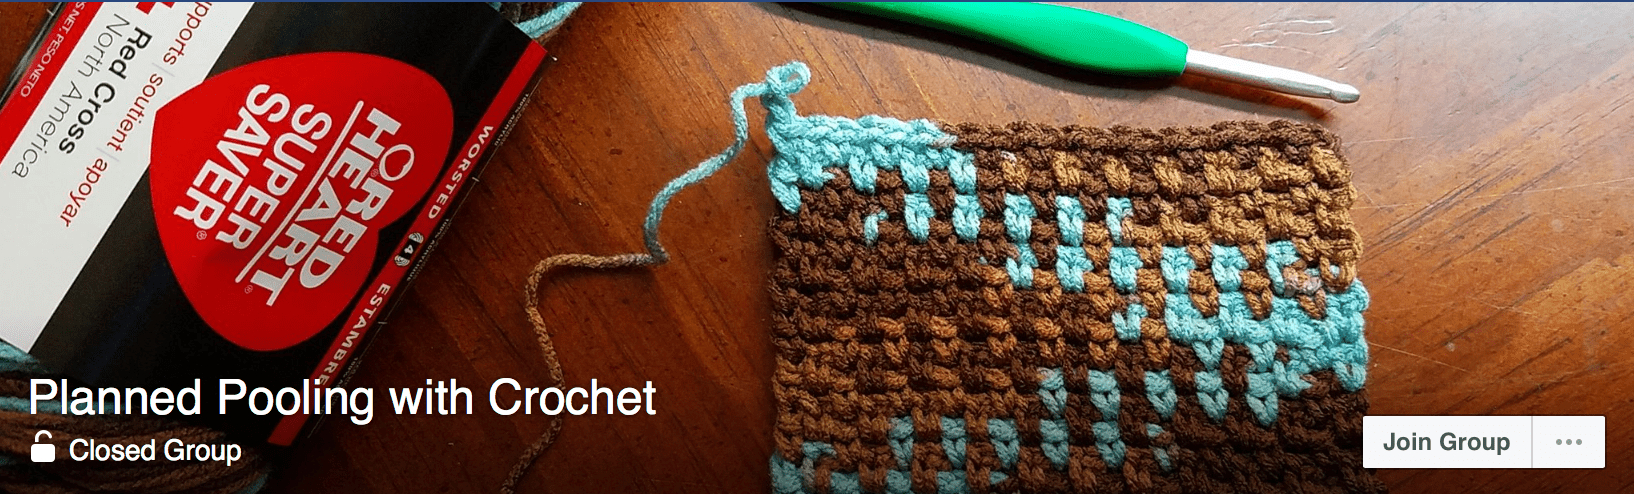 Crochet Pooling Projects Colorwork Planned Pooling In Crochet